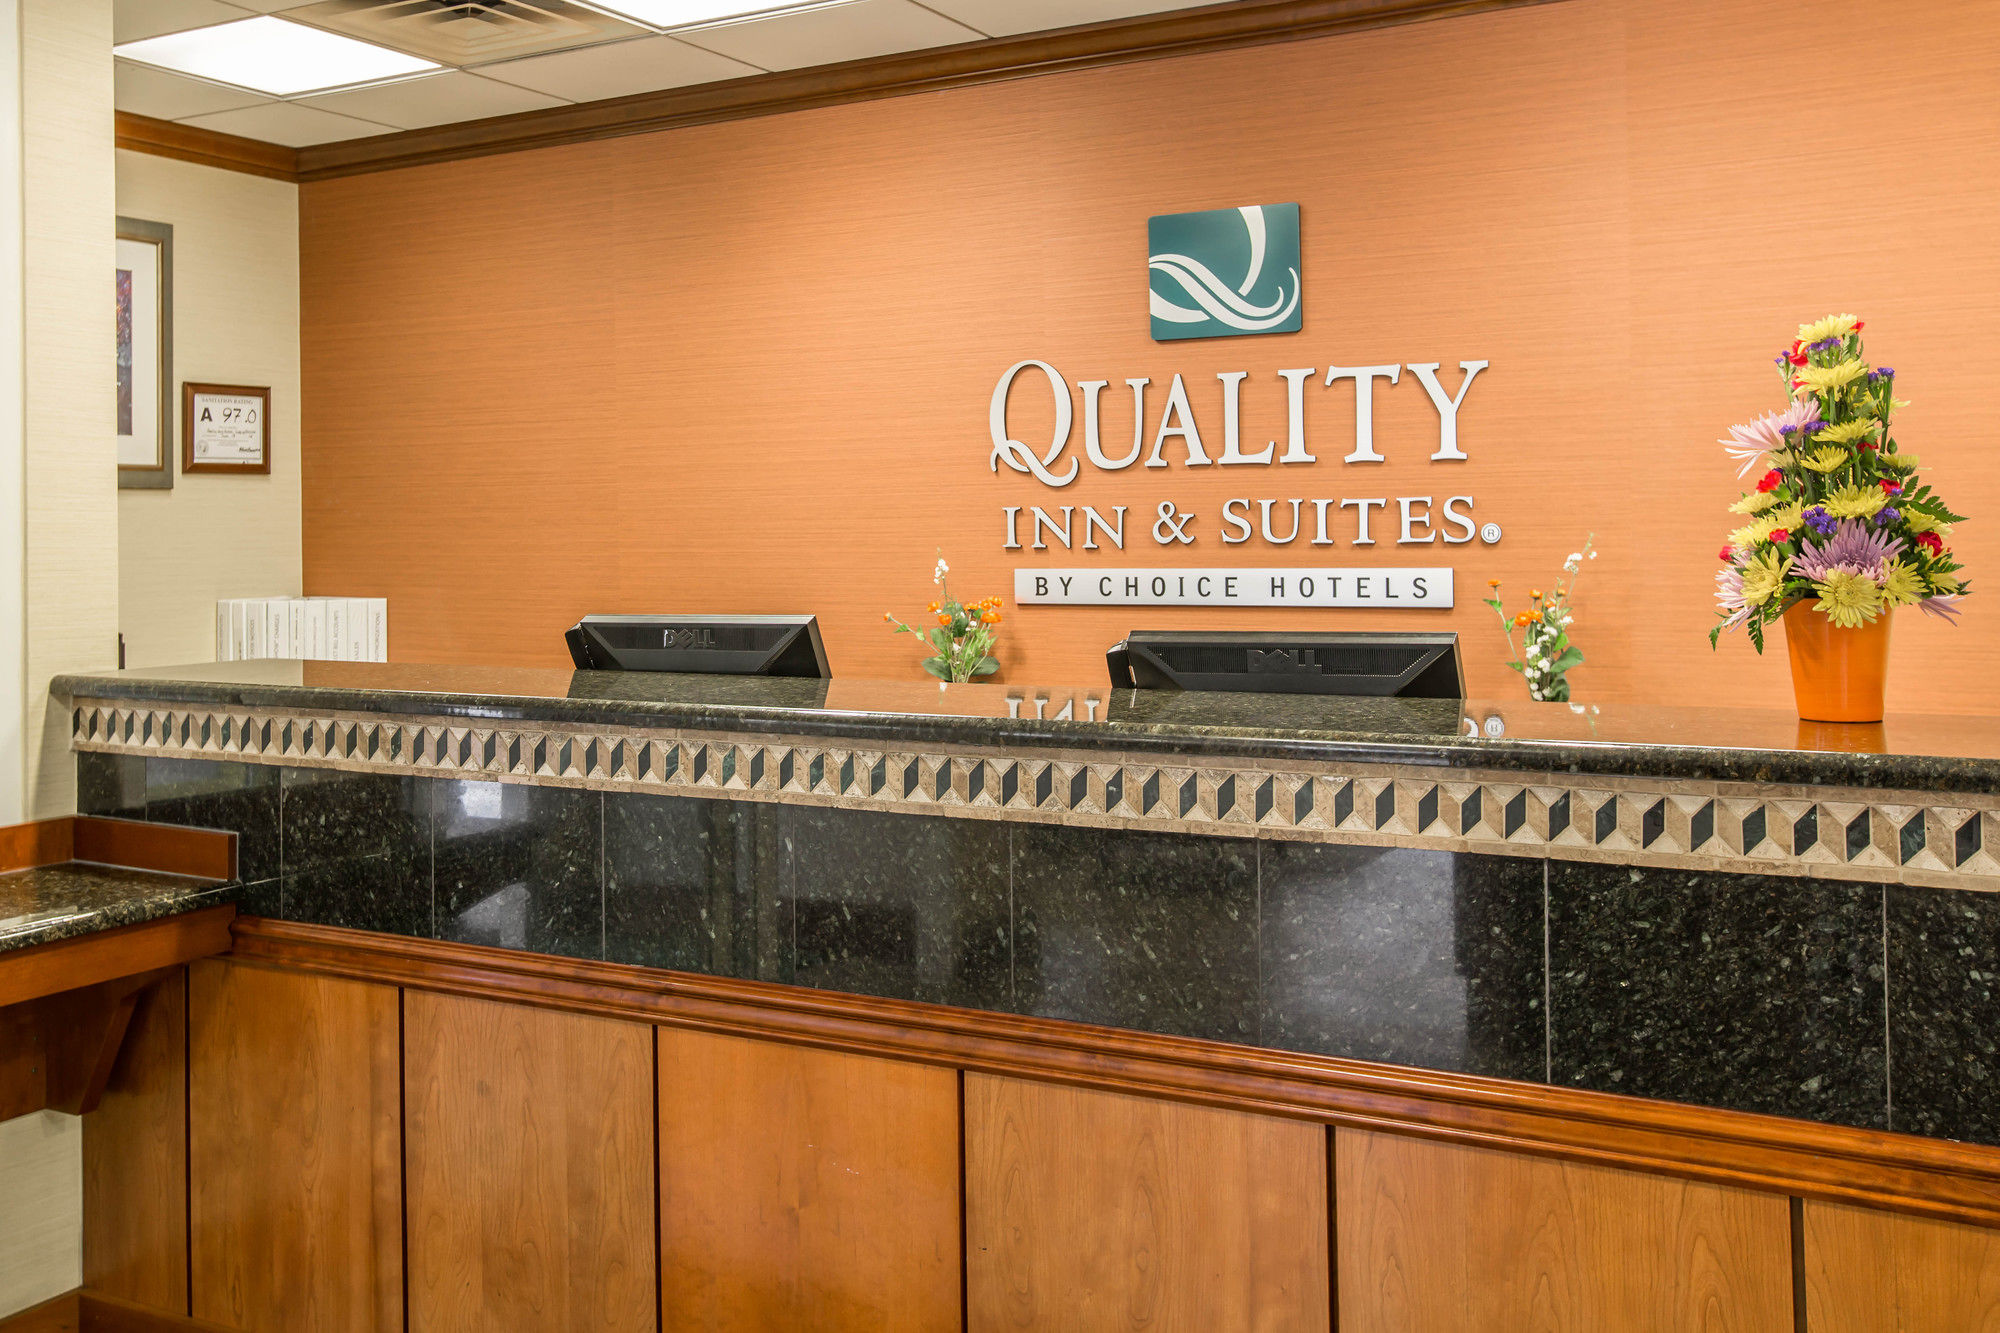 Quality Inn & Suites Biltmore East in Asheville, NC